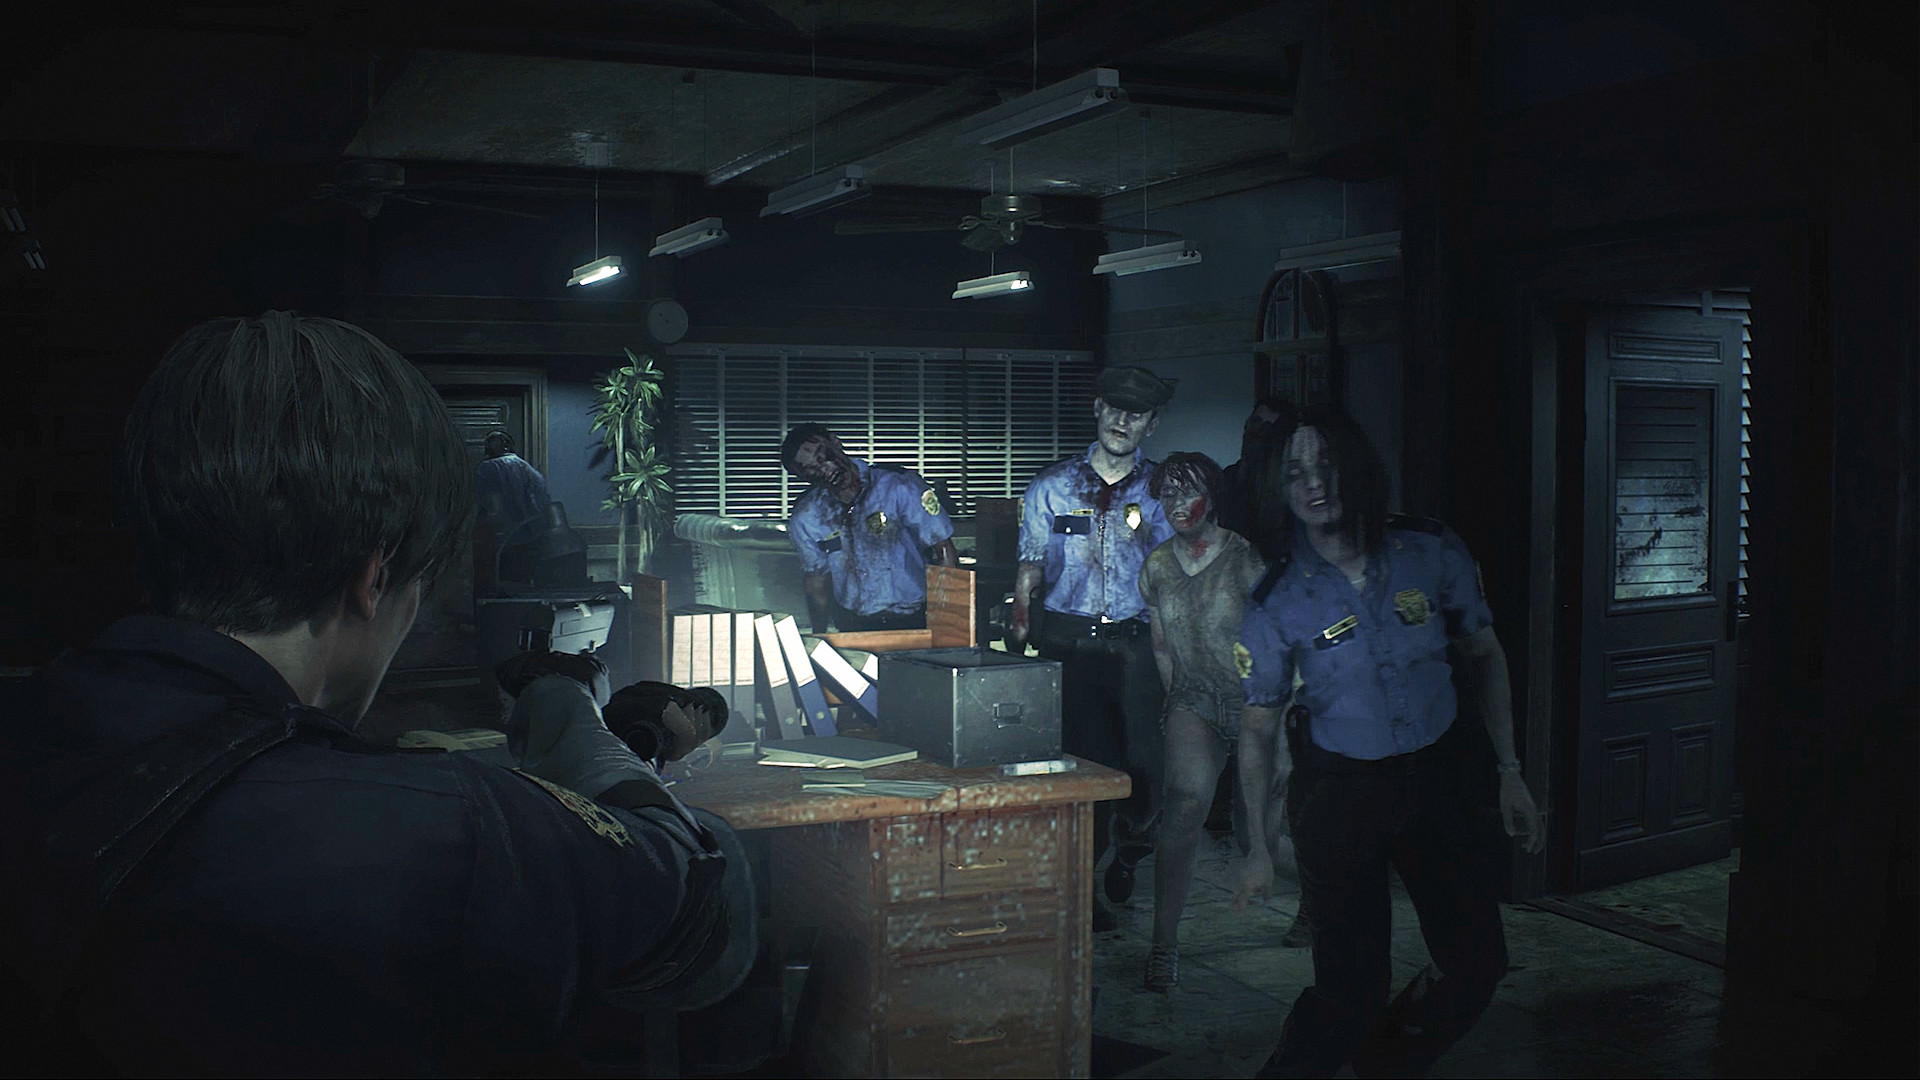 How to redeem preorder bonus DLC in Resident Evil 2